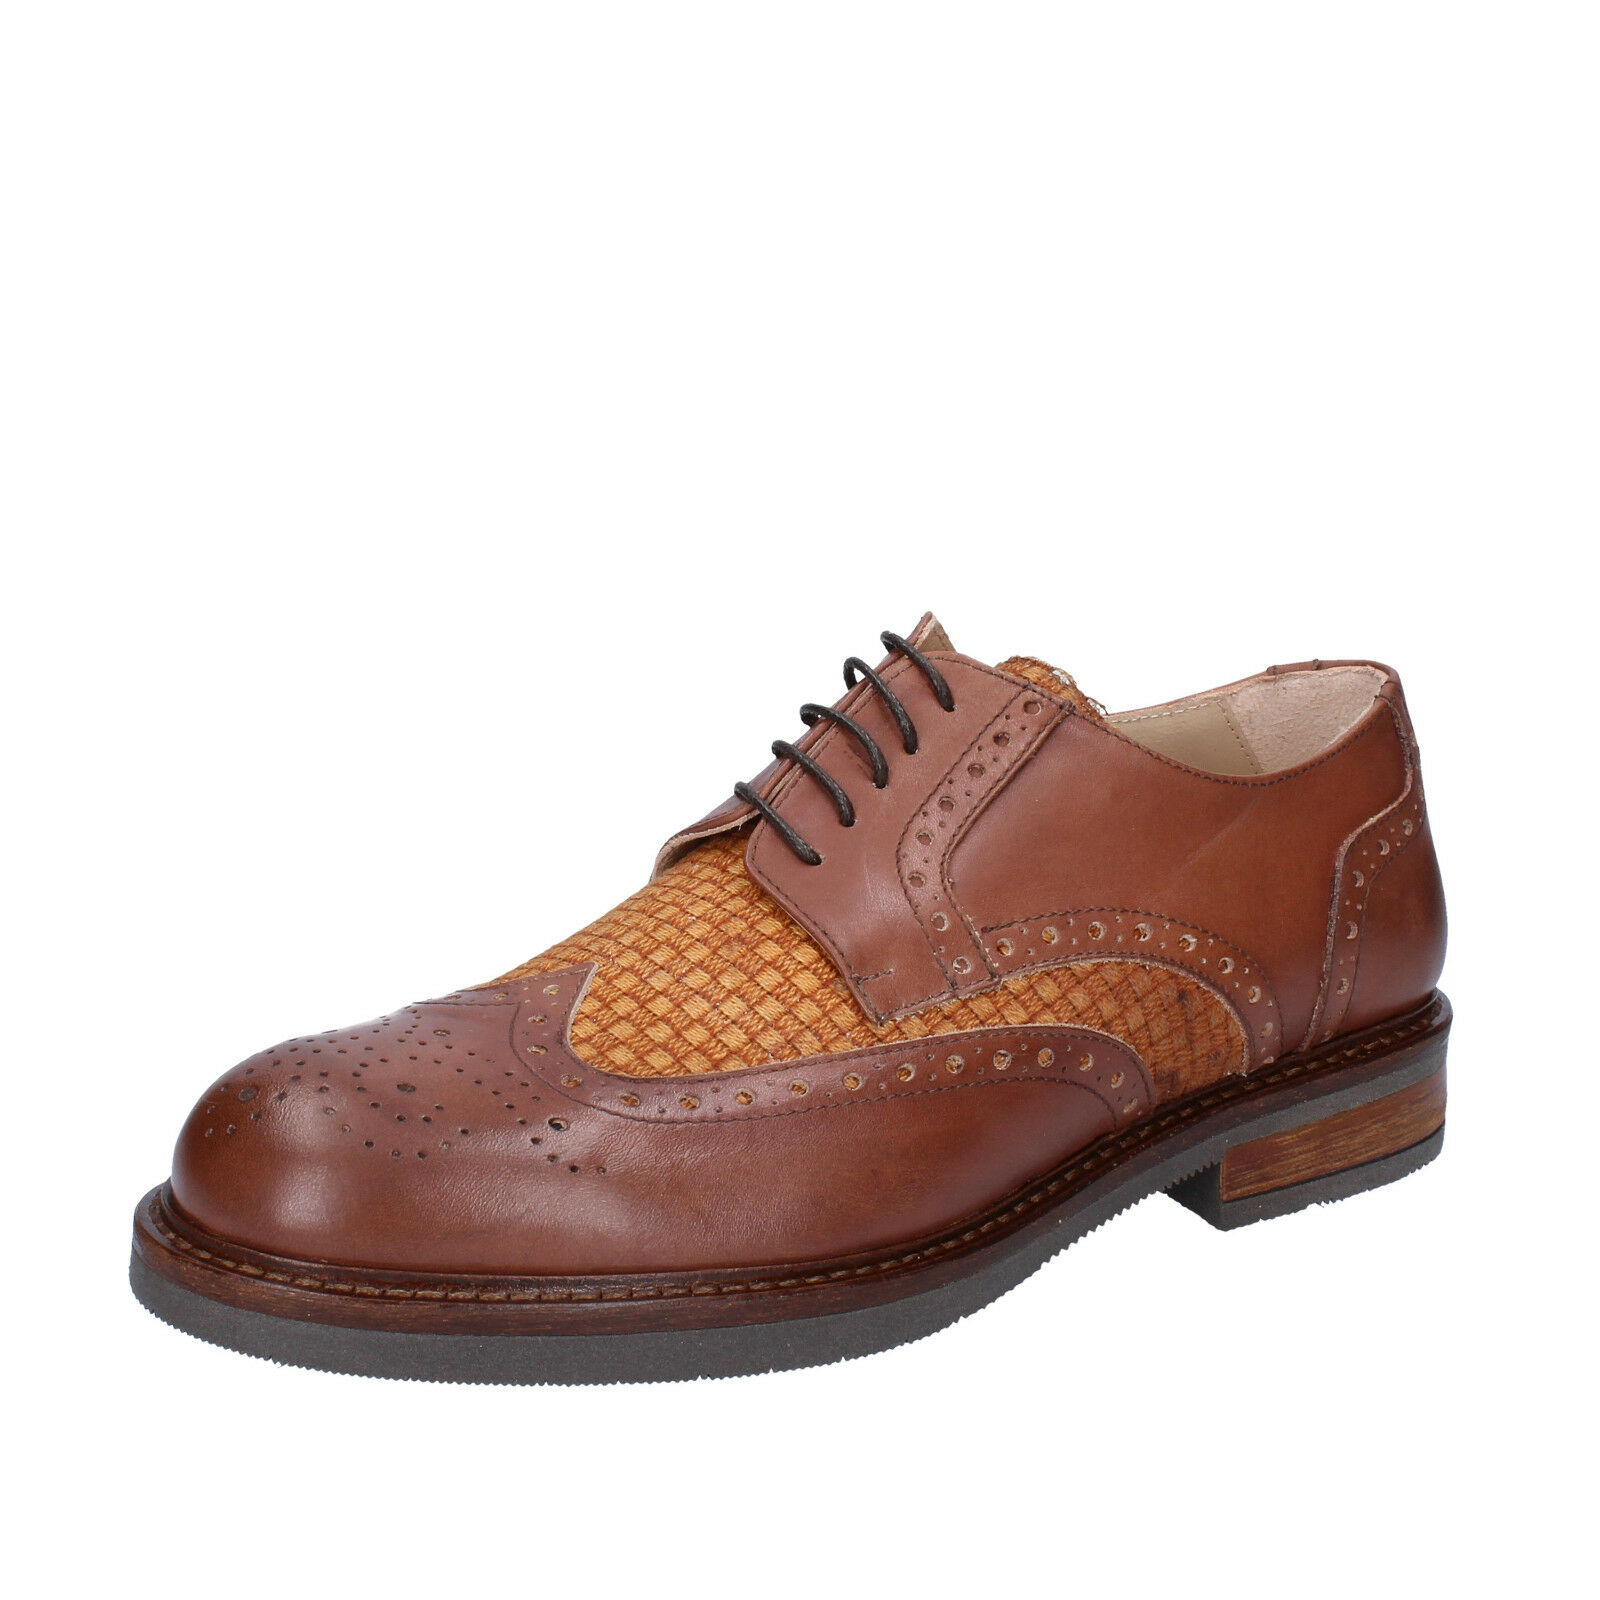 men's shoes FDF SHOES 7 () elegant brown leather textile BZ344-B